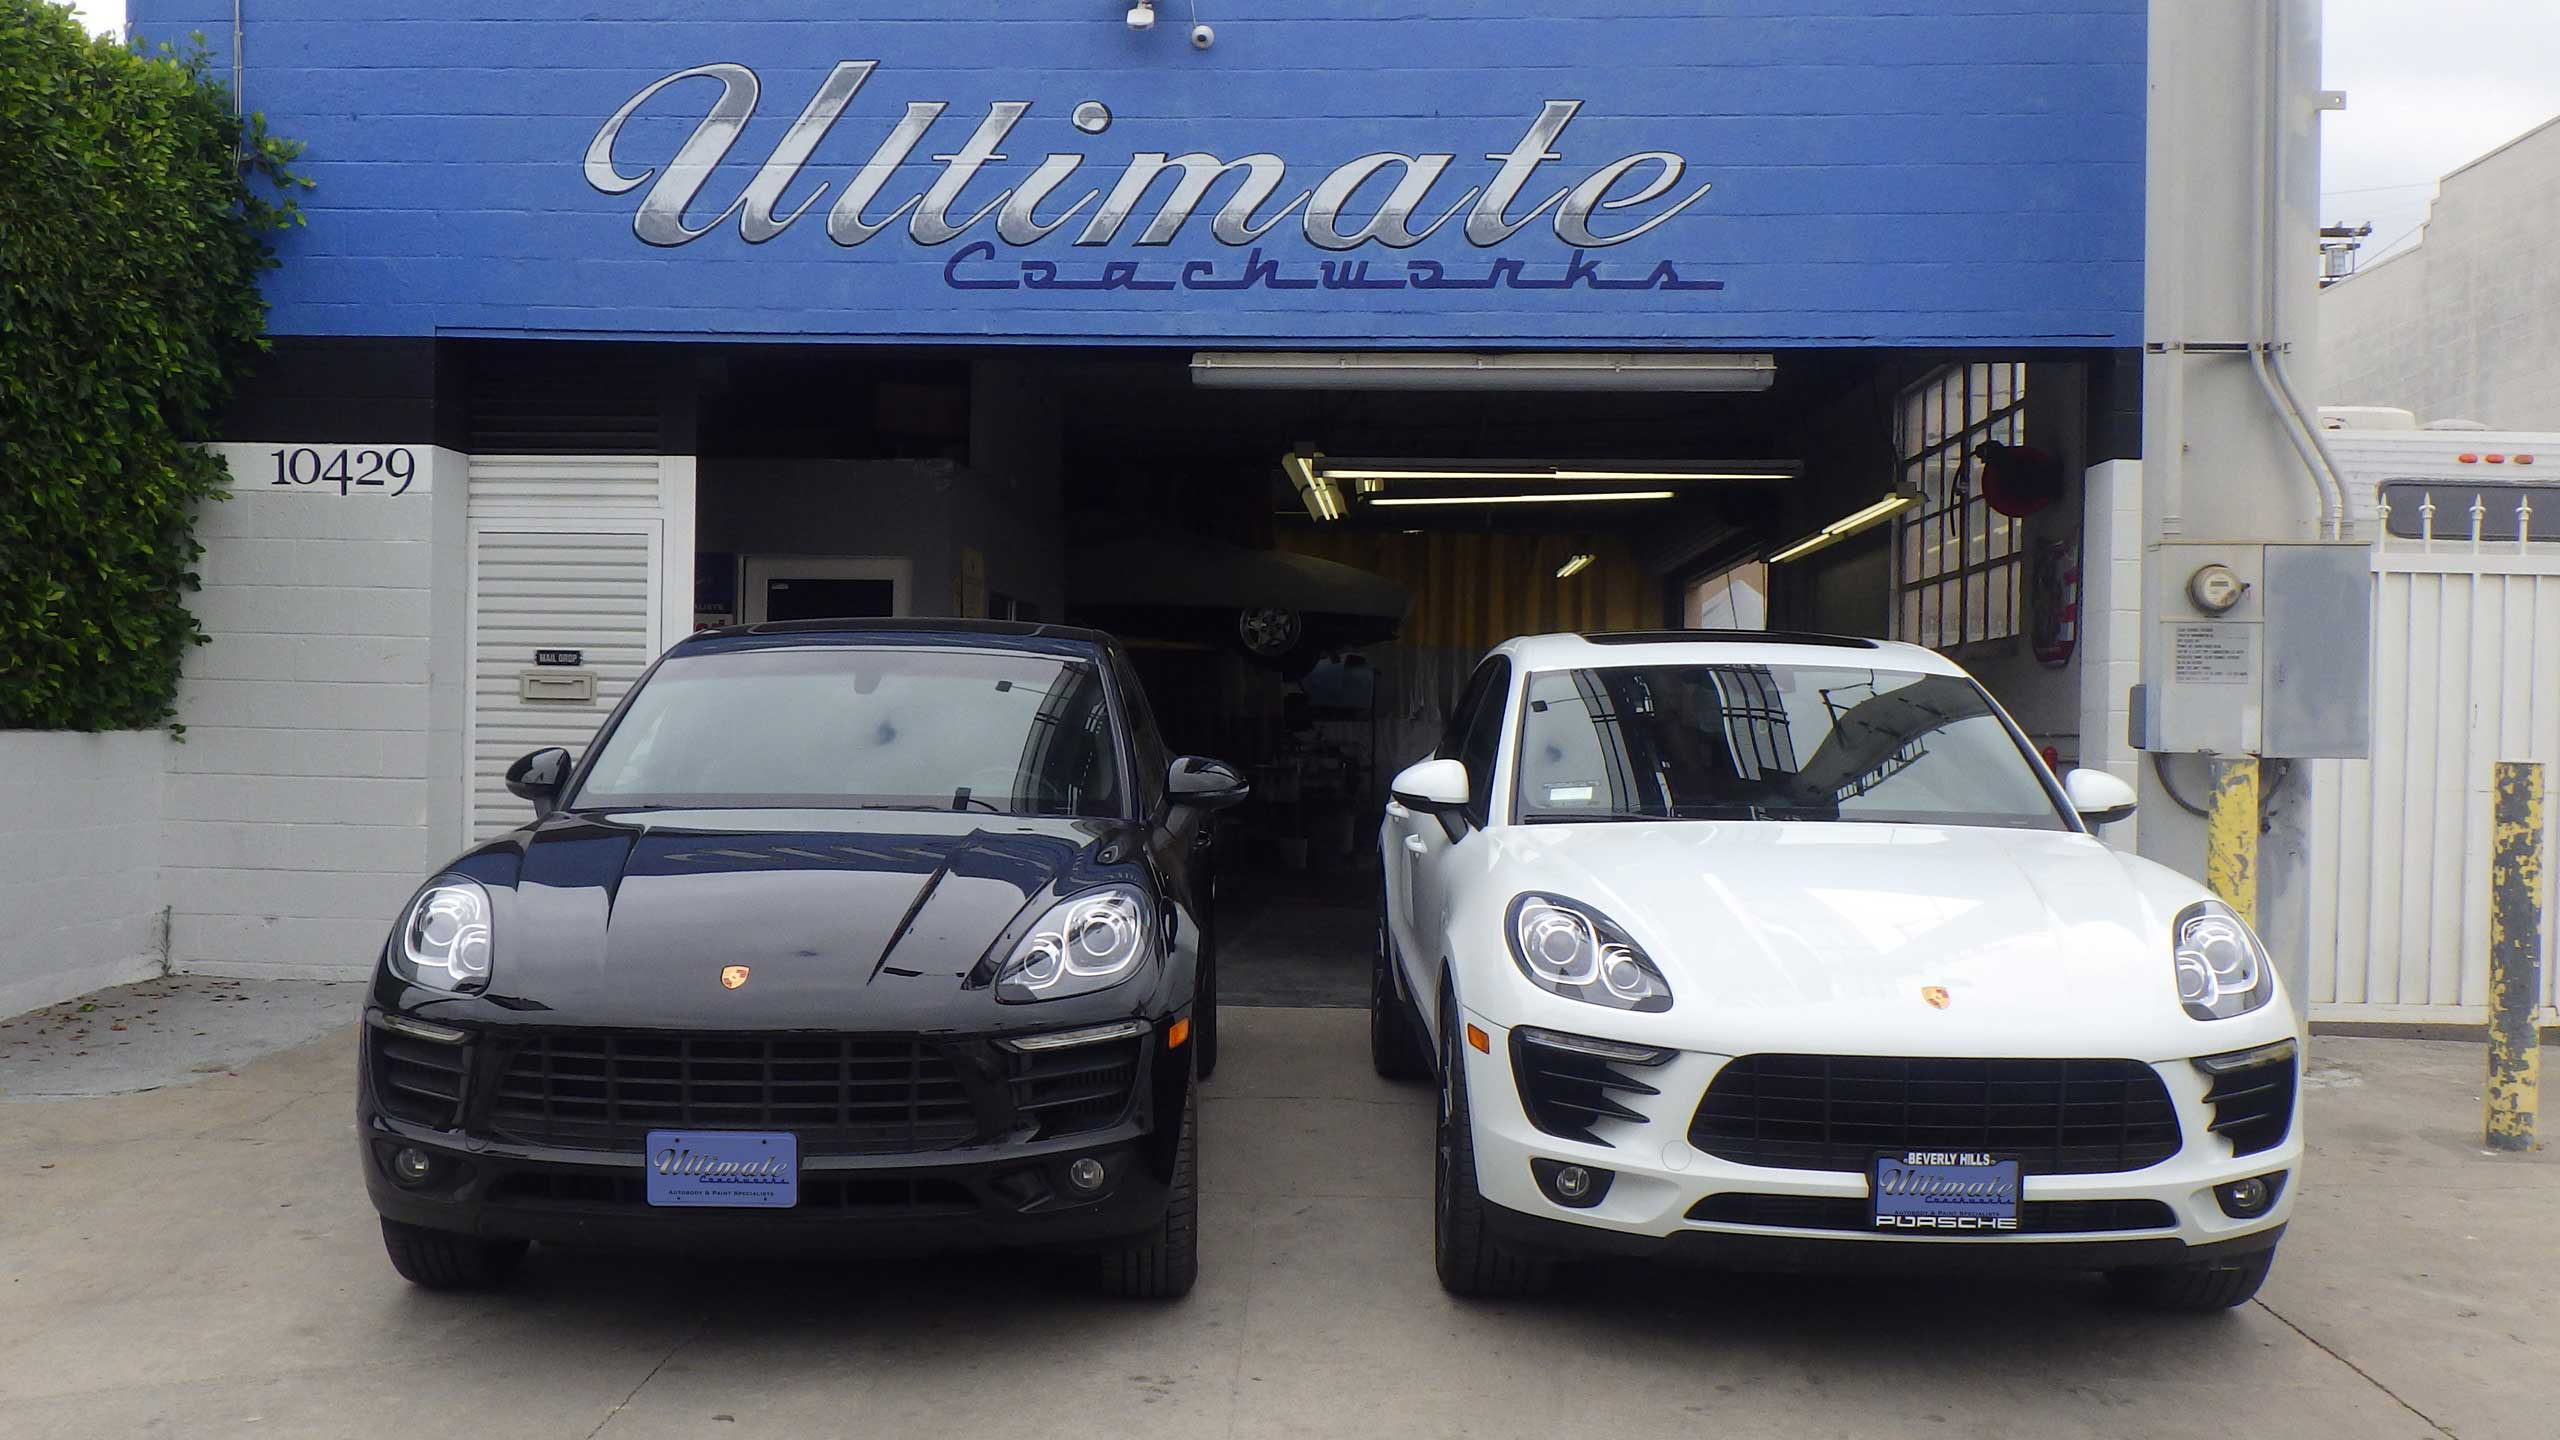 UC_2_car_front_storefront_2560x1440-004